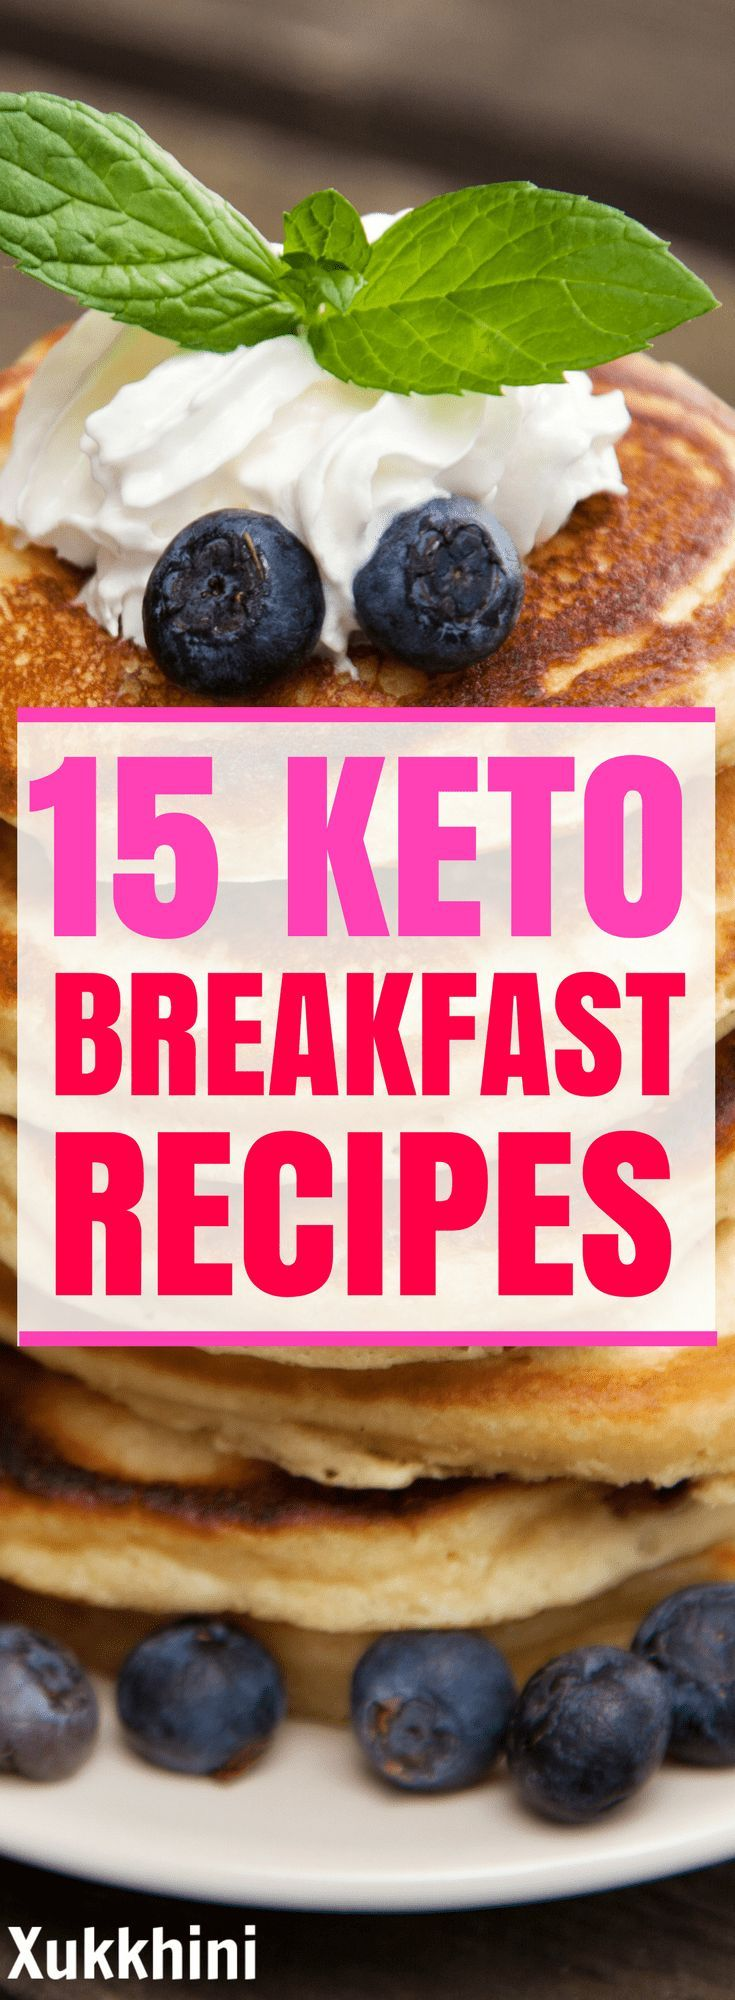 15 Keto Breakfast Recipes: Best Quick & Easy Low Carb Recipes